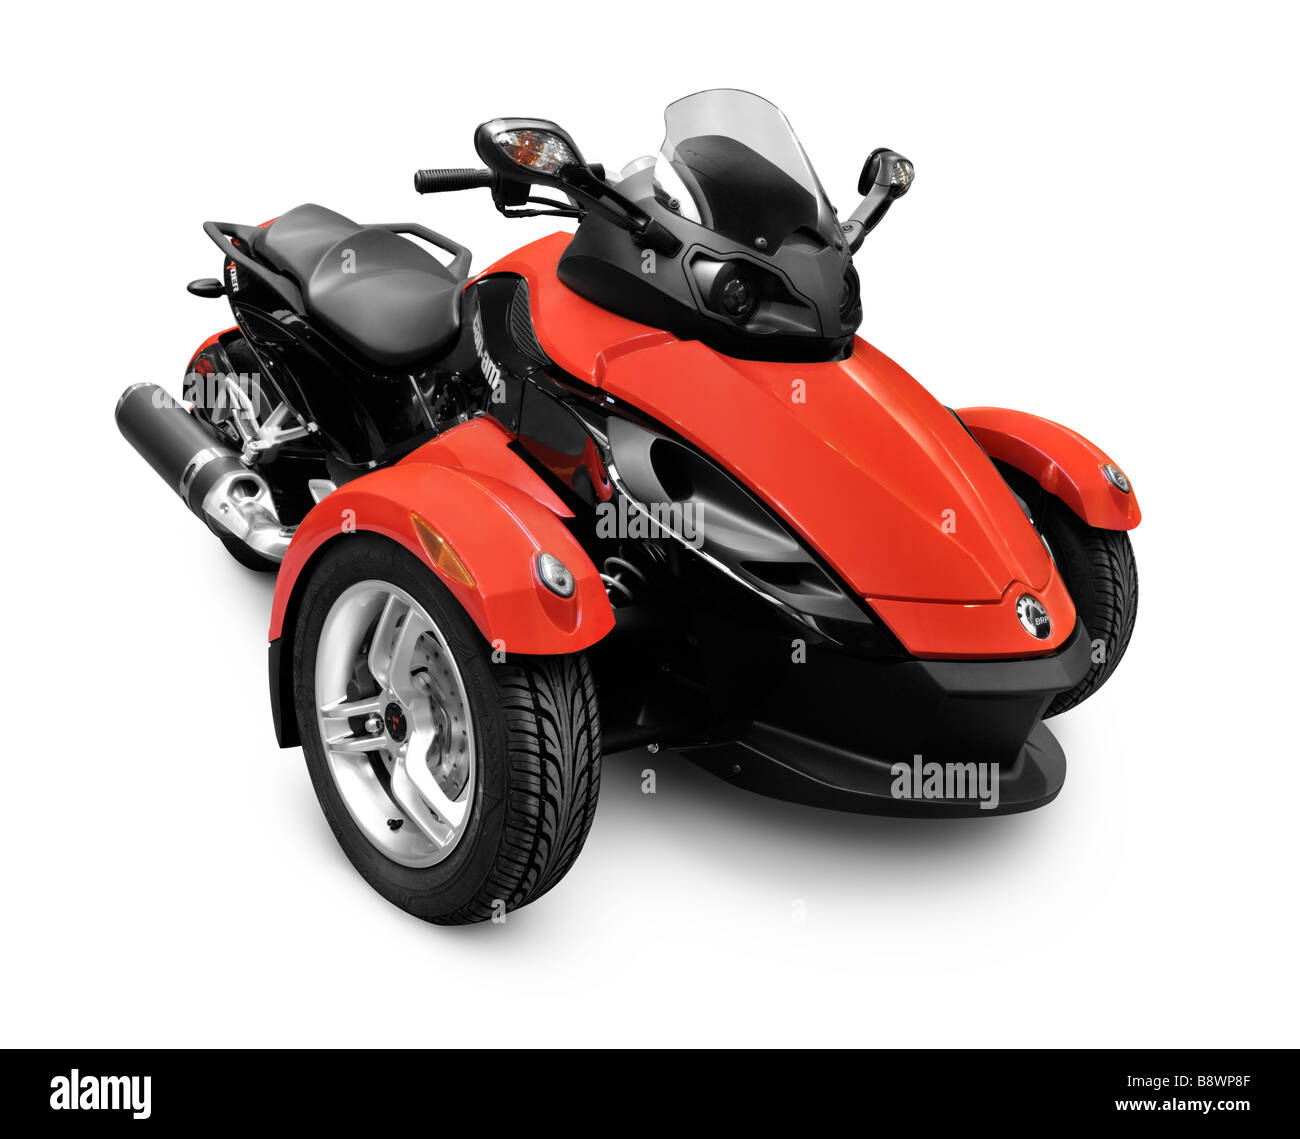 brp can am spyder roadster 3 wheeled vehicle stock photo royalty free image 22693903 alamy. Black Bedroom Furniture Sets. Home Design Ideas